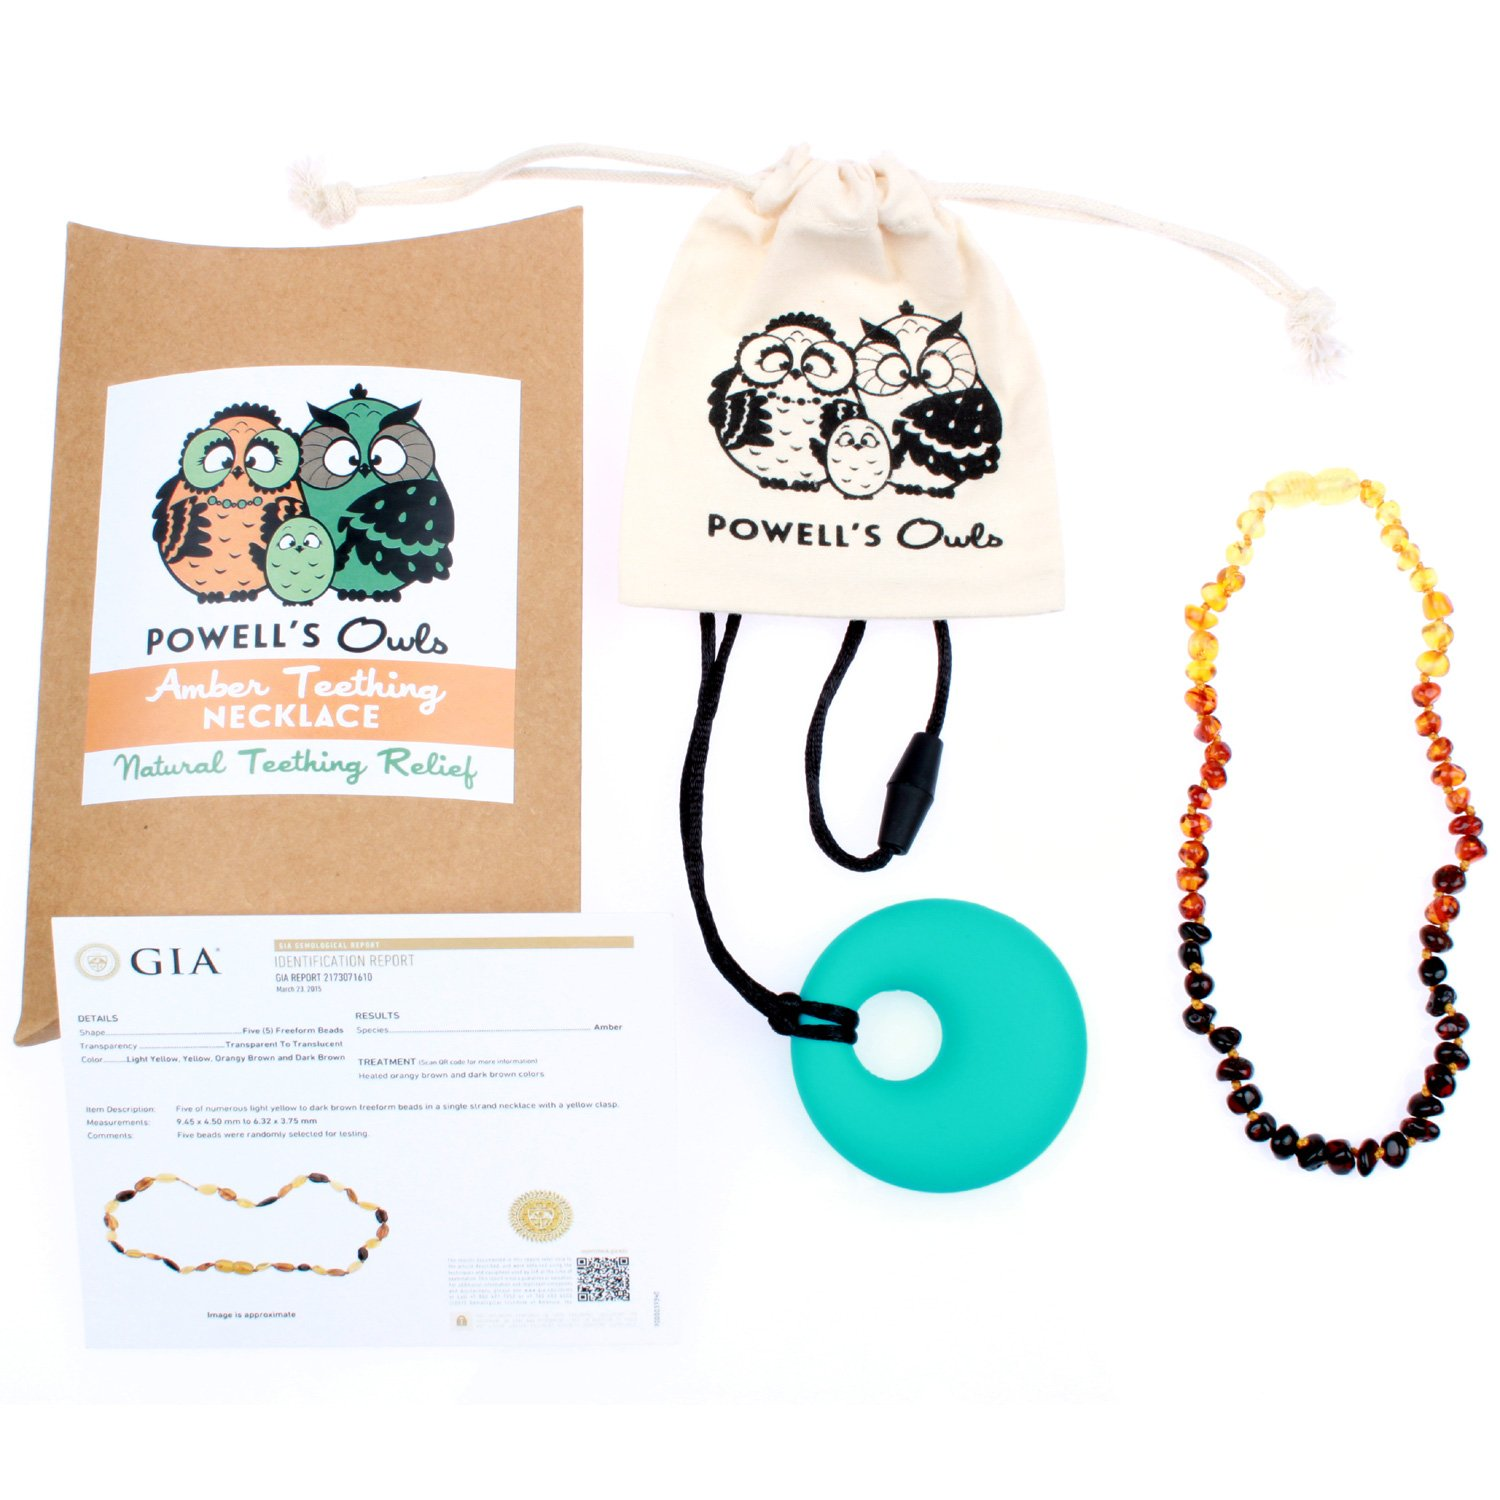 Baltic Amber Teething Necklace - Handmade in Lithuania - Lab-Tested Authentic - Comes with Silicone Teething Pendant (12.5 inches - Standard, Baroque Rainbow) Powell' s Owls 32cmBaroqueRainbowNecklace